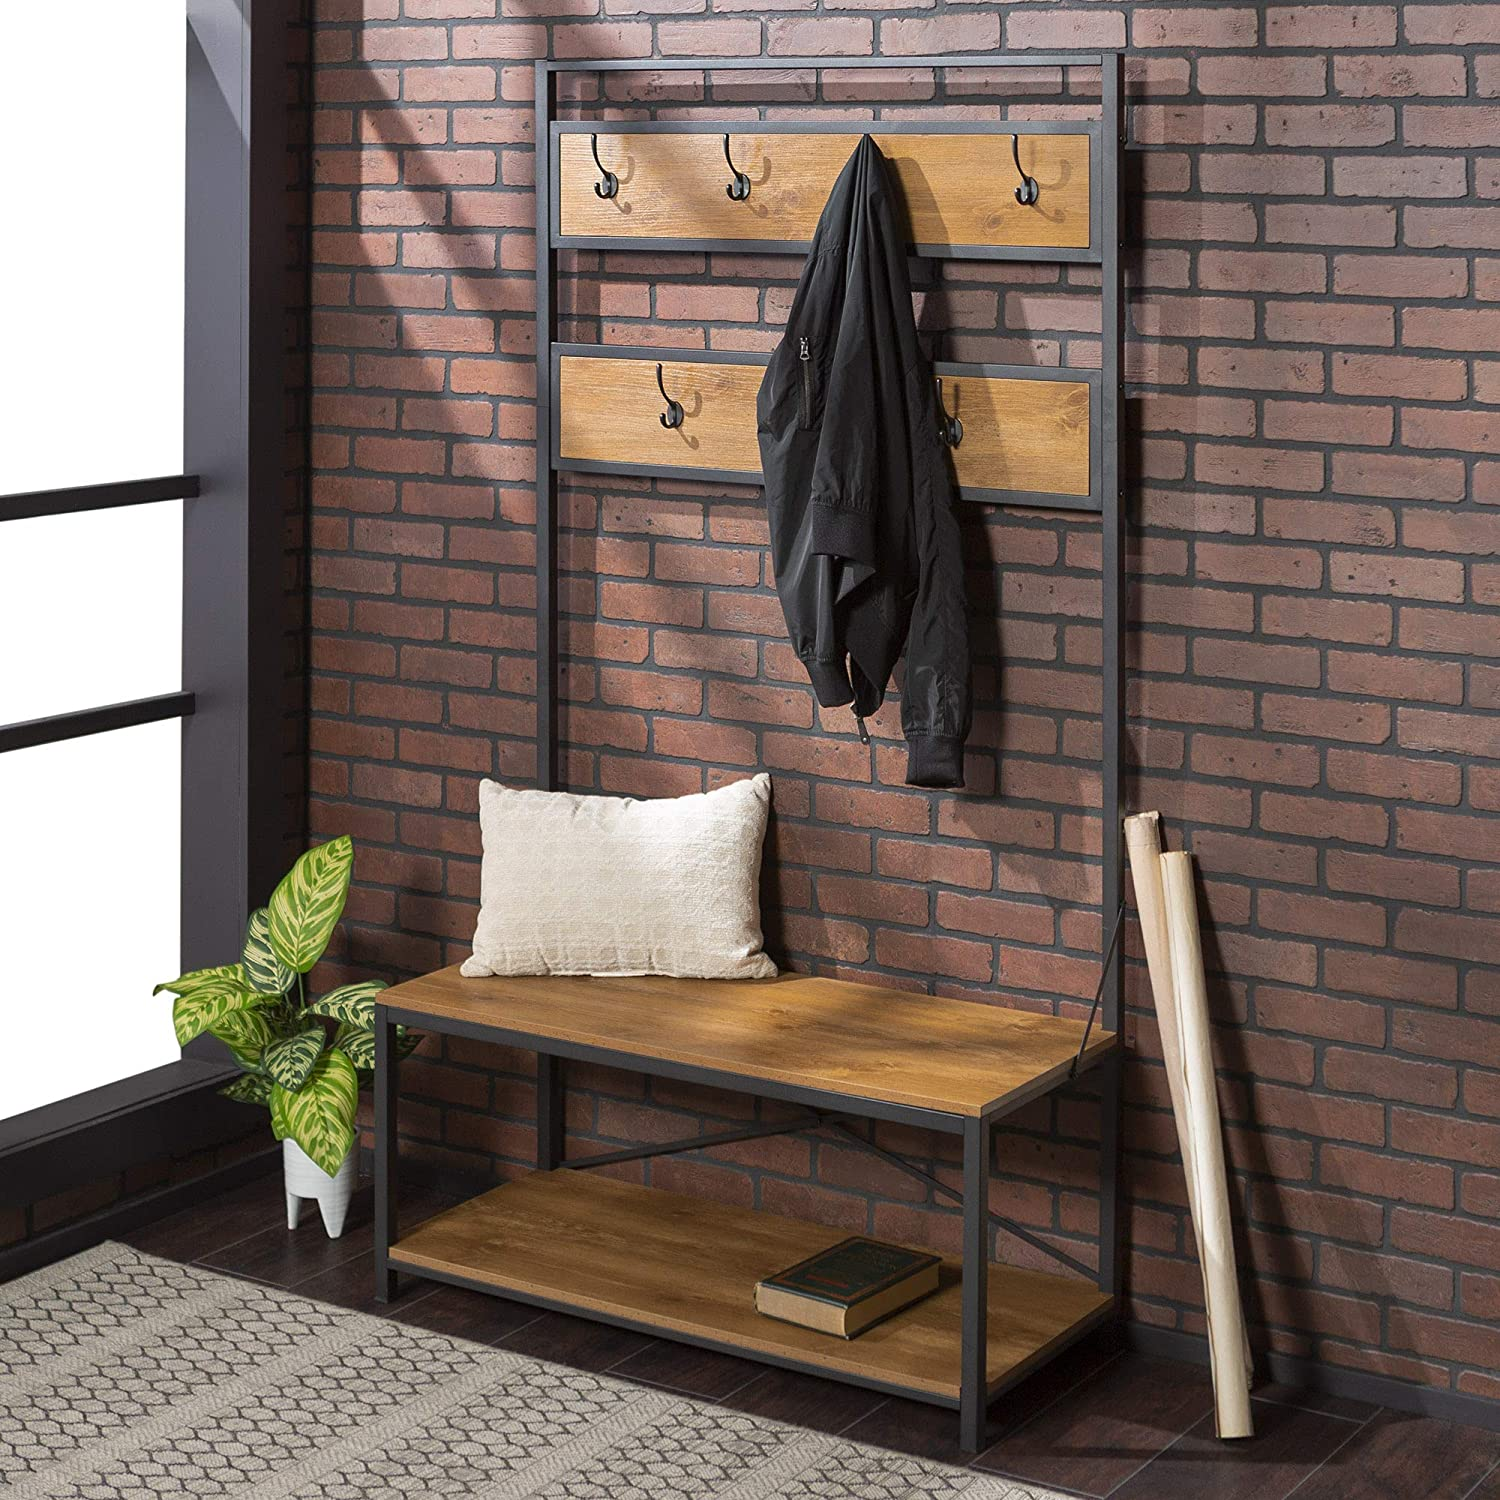 Home Accent Furnishings New 72 Inch Tall Hall Tree-Barnwood Color